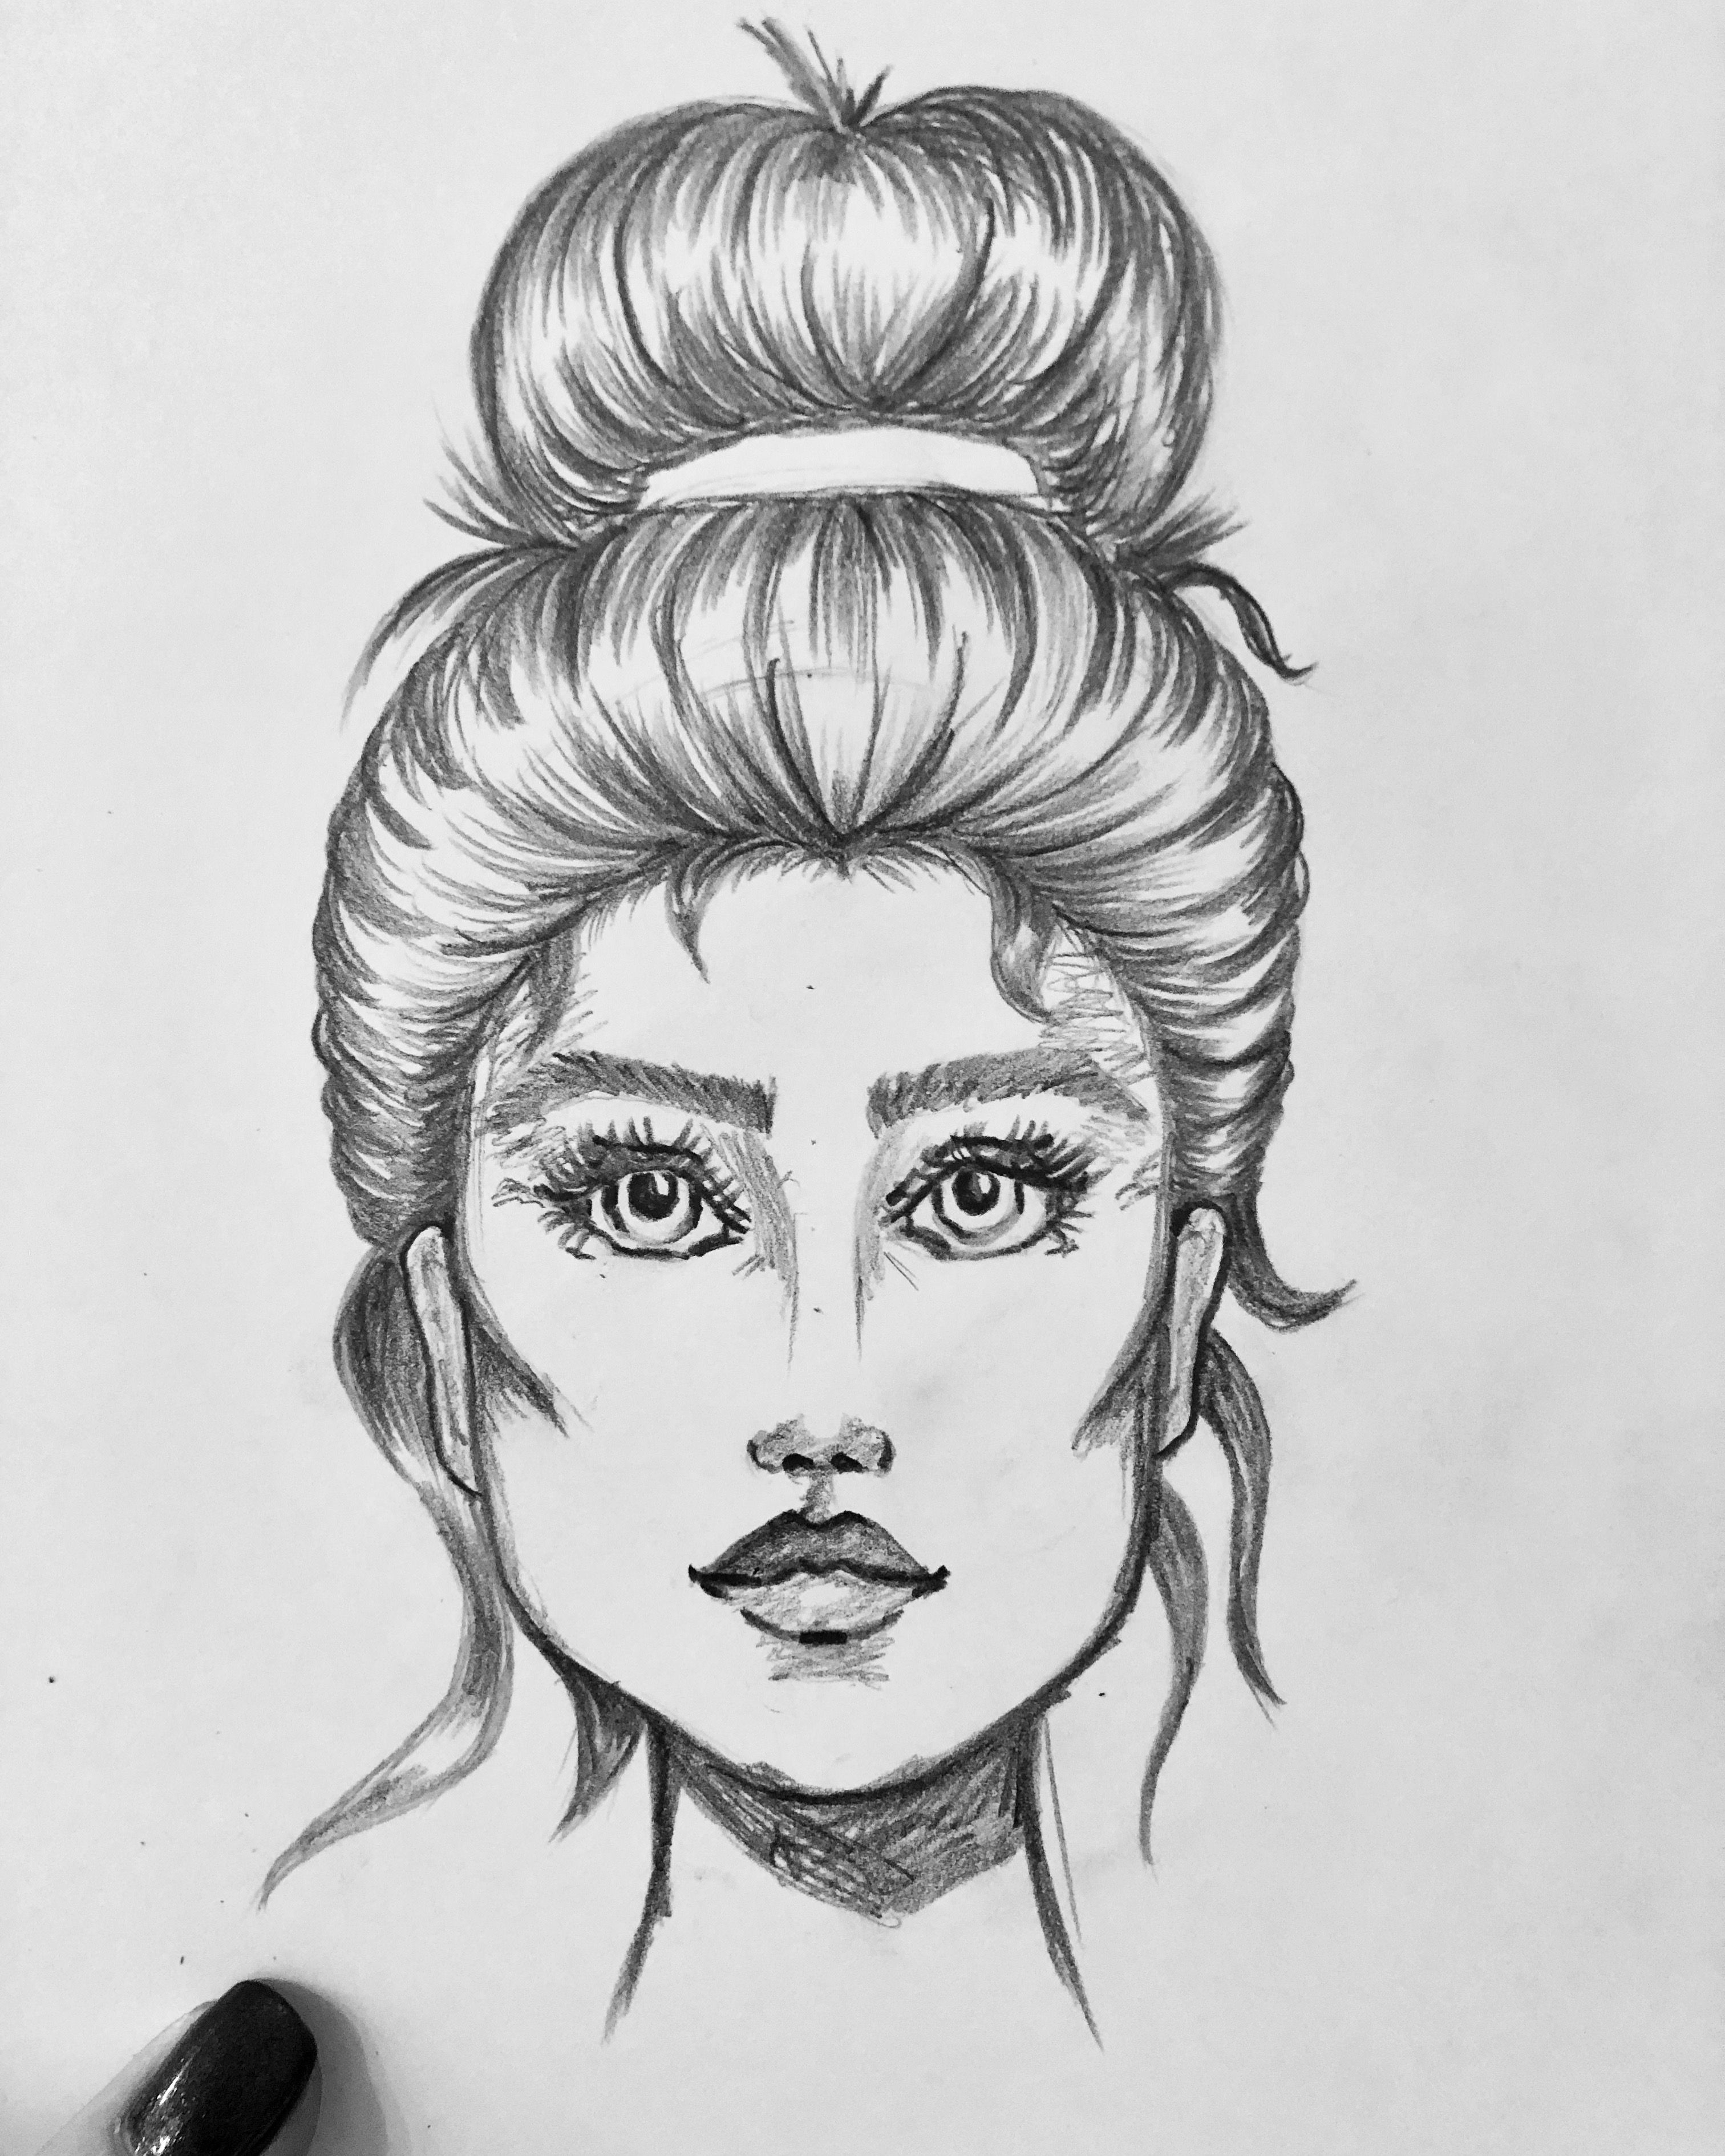 Pin by Seredkinay on Мои работы Girl sketch, Female